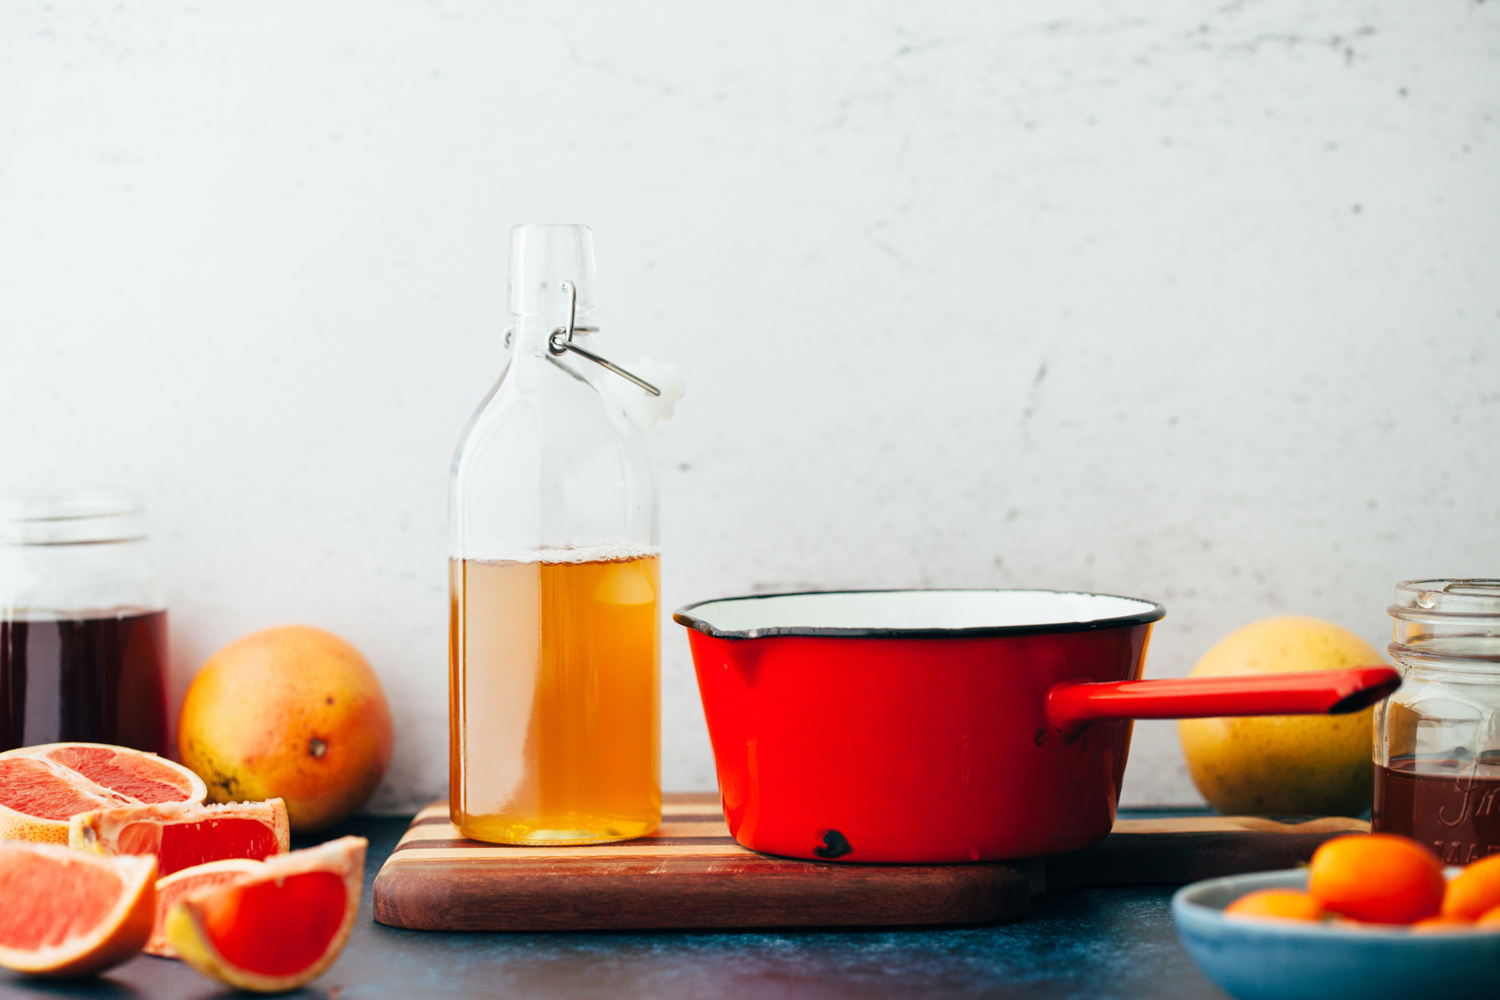 Dame's Nectar is a mocktail recipe using Earl Grey tea, honey syrup, and freshly squeezed grapefruit juice.